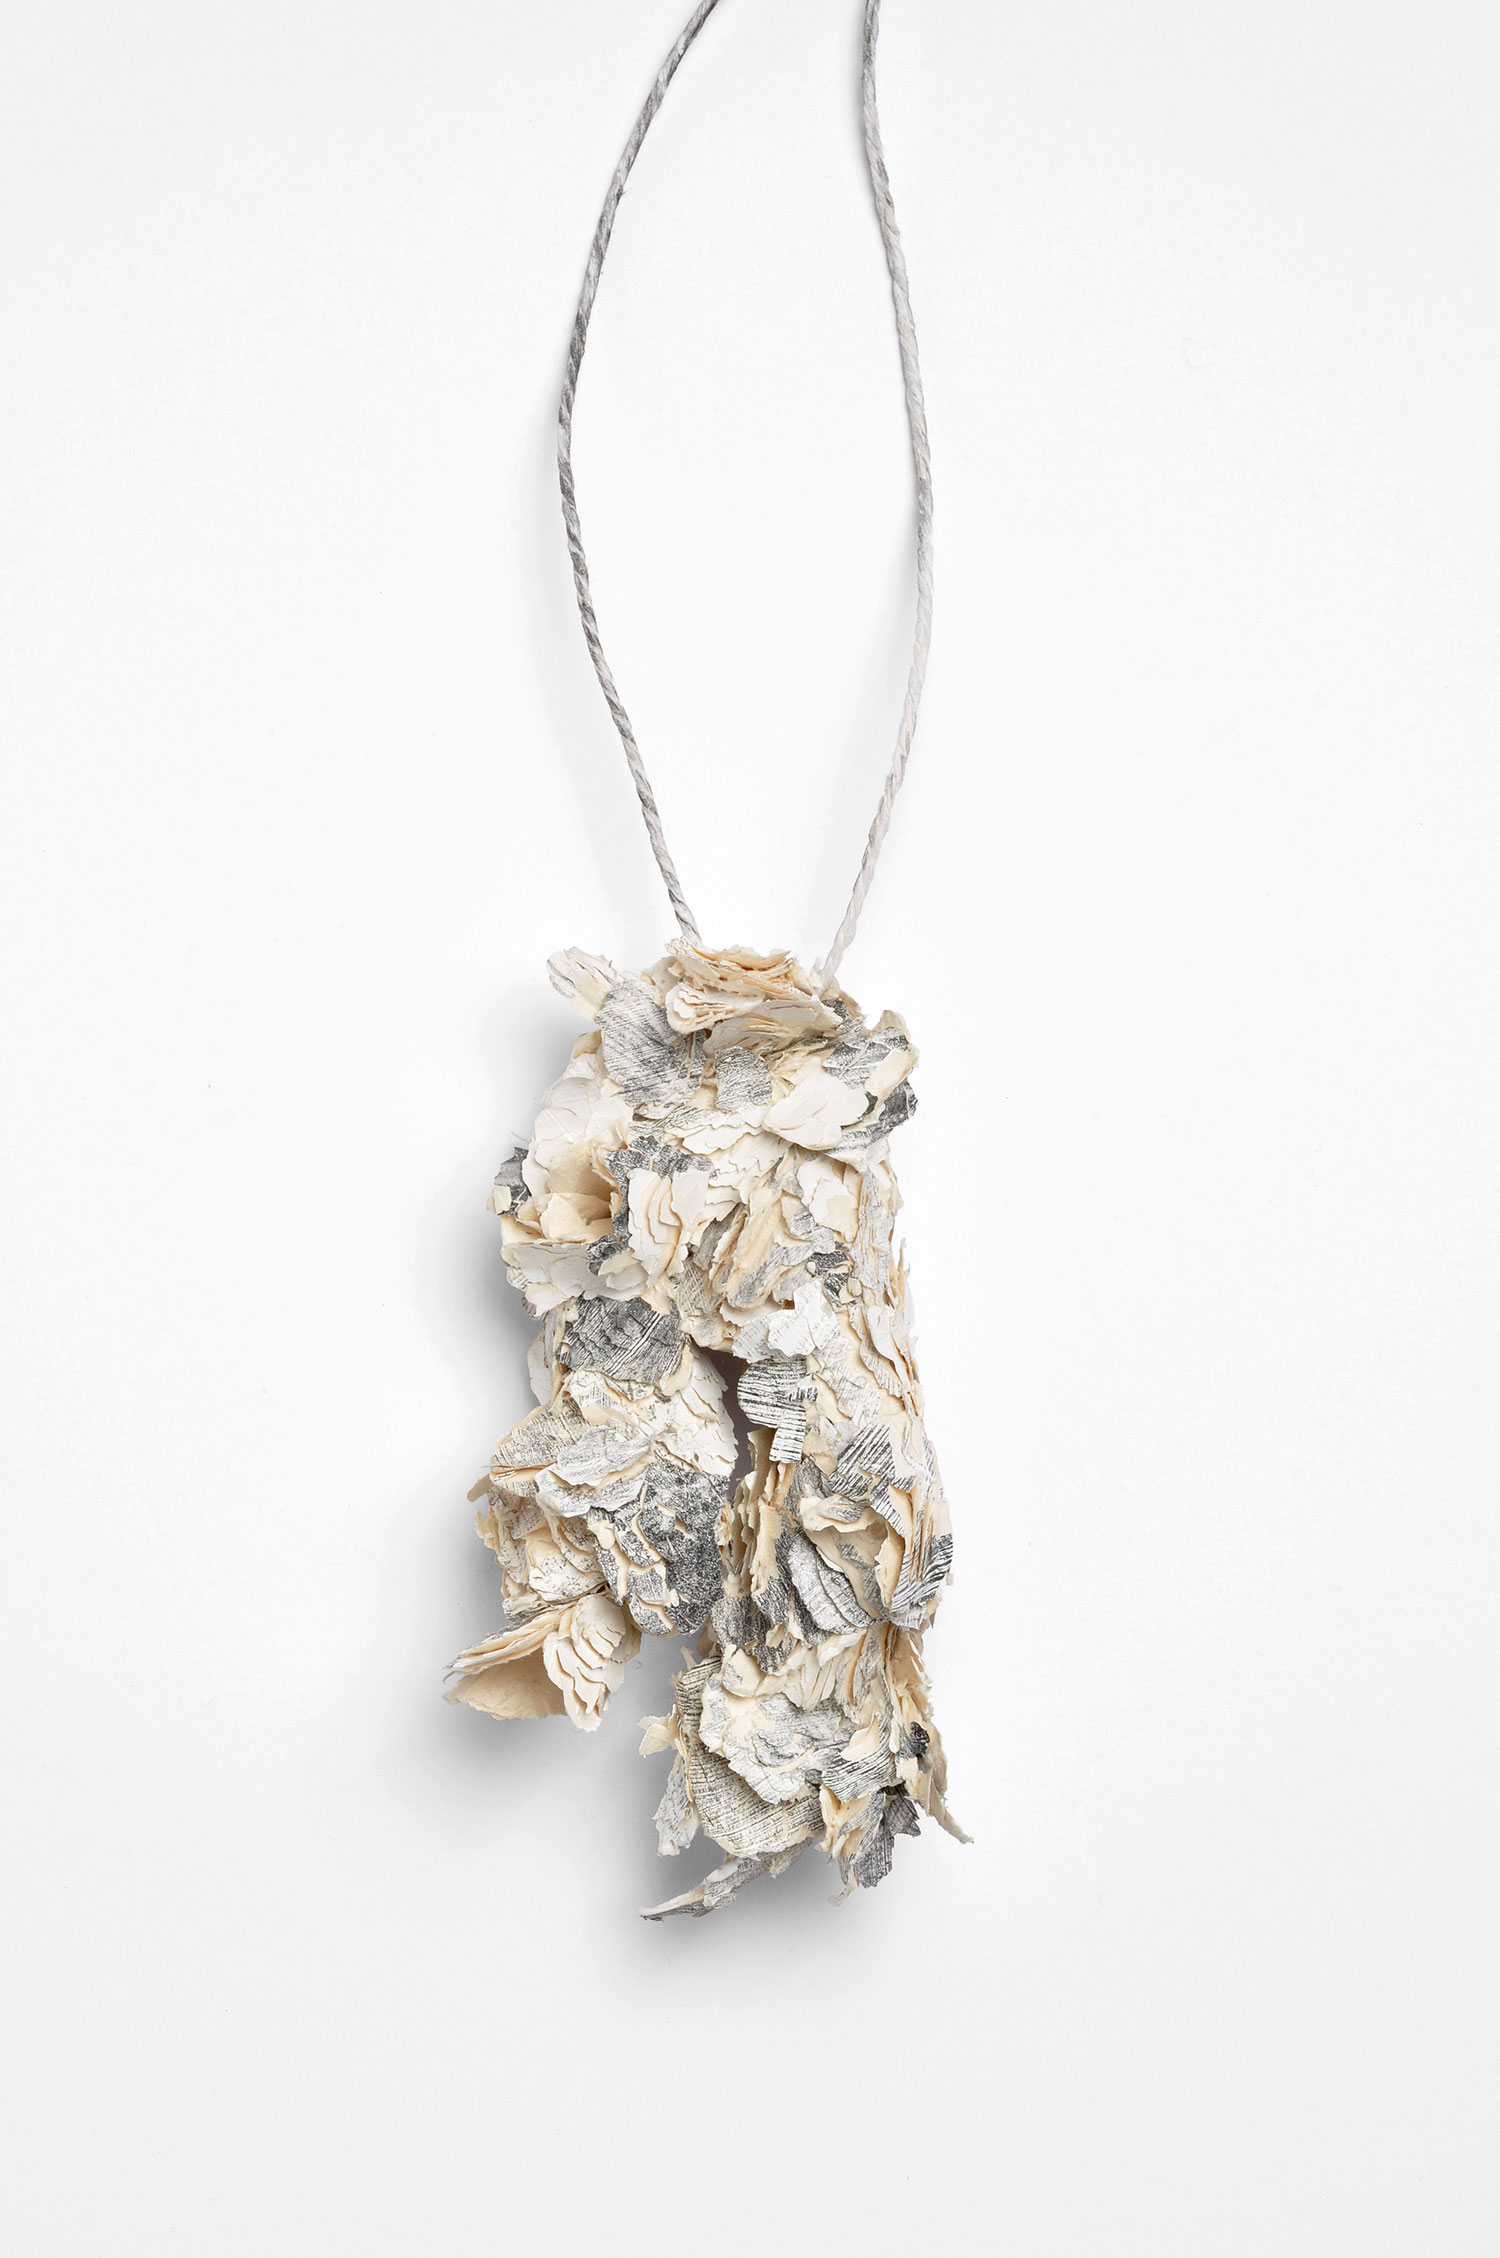 Untitled | Necklace     |   2010        | Treated cellulose, graphite, paint, glue, silver         |   175X90X73 mm  |  Photographer: Mirei Takeuchi